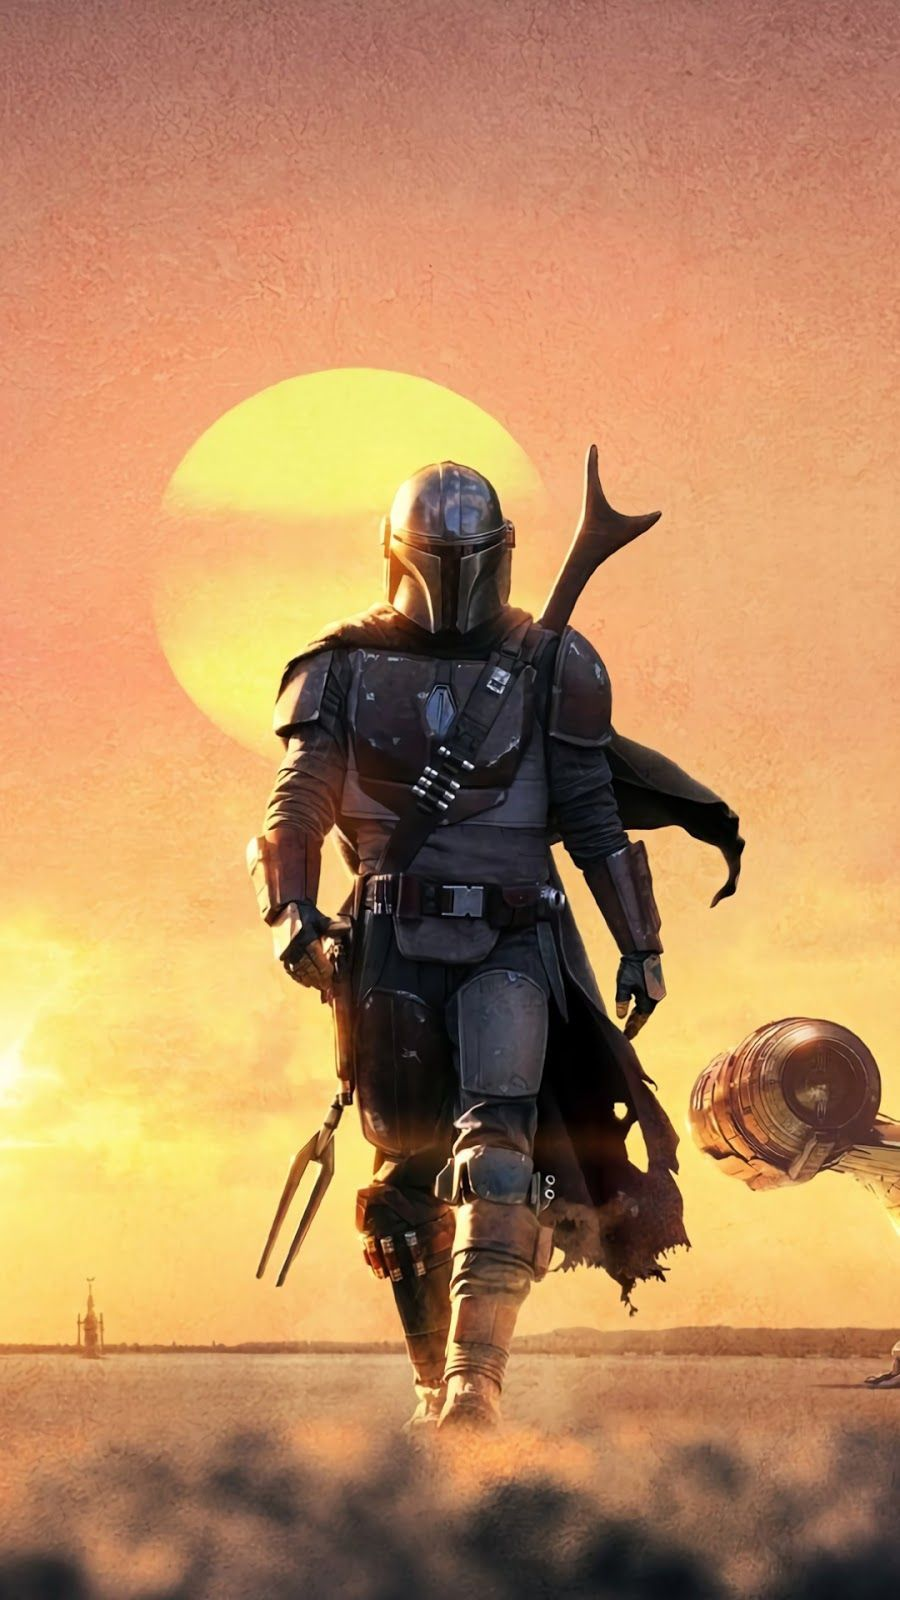 Mandalorian Phone Wallpapers Top Free Mandalorian Phone Backgrounds Wallpaperaccess